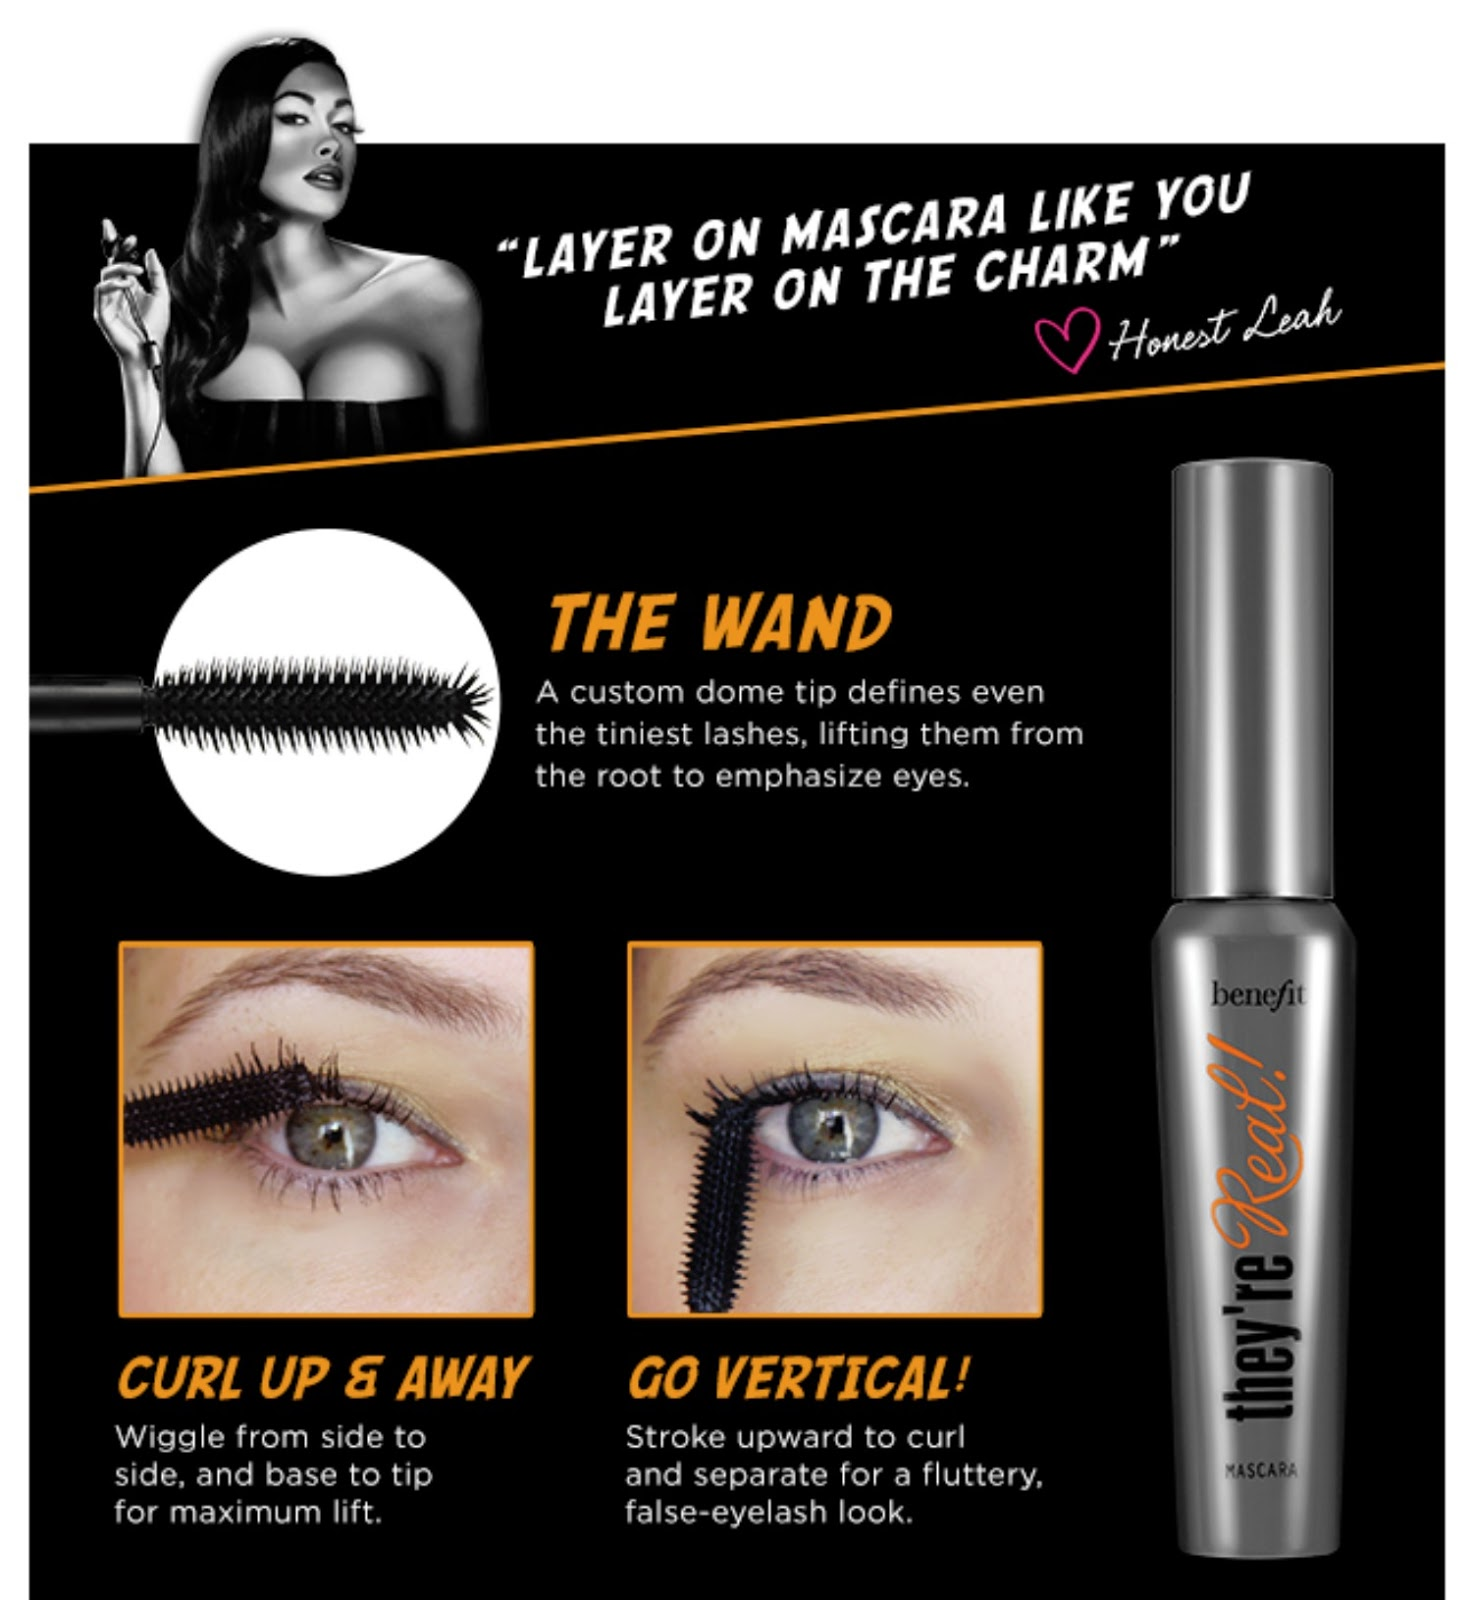 cc6115a3ed2 Benefit They're real! push-up liner (1.4 g r/0.04 oz.). It's the FIRST EVER  lash-hugging gel liner in a pen! Now in Black, Brown, Purple and Blue (the  green ...